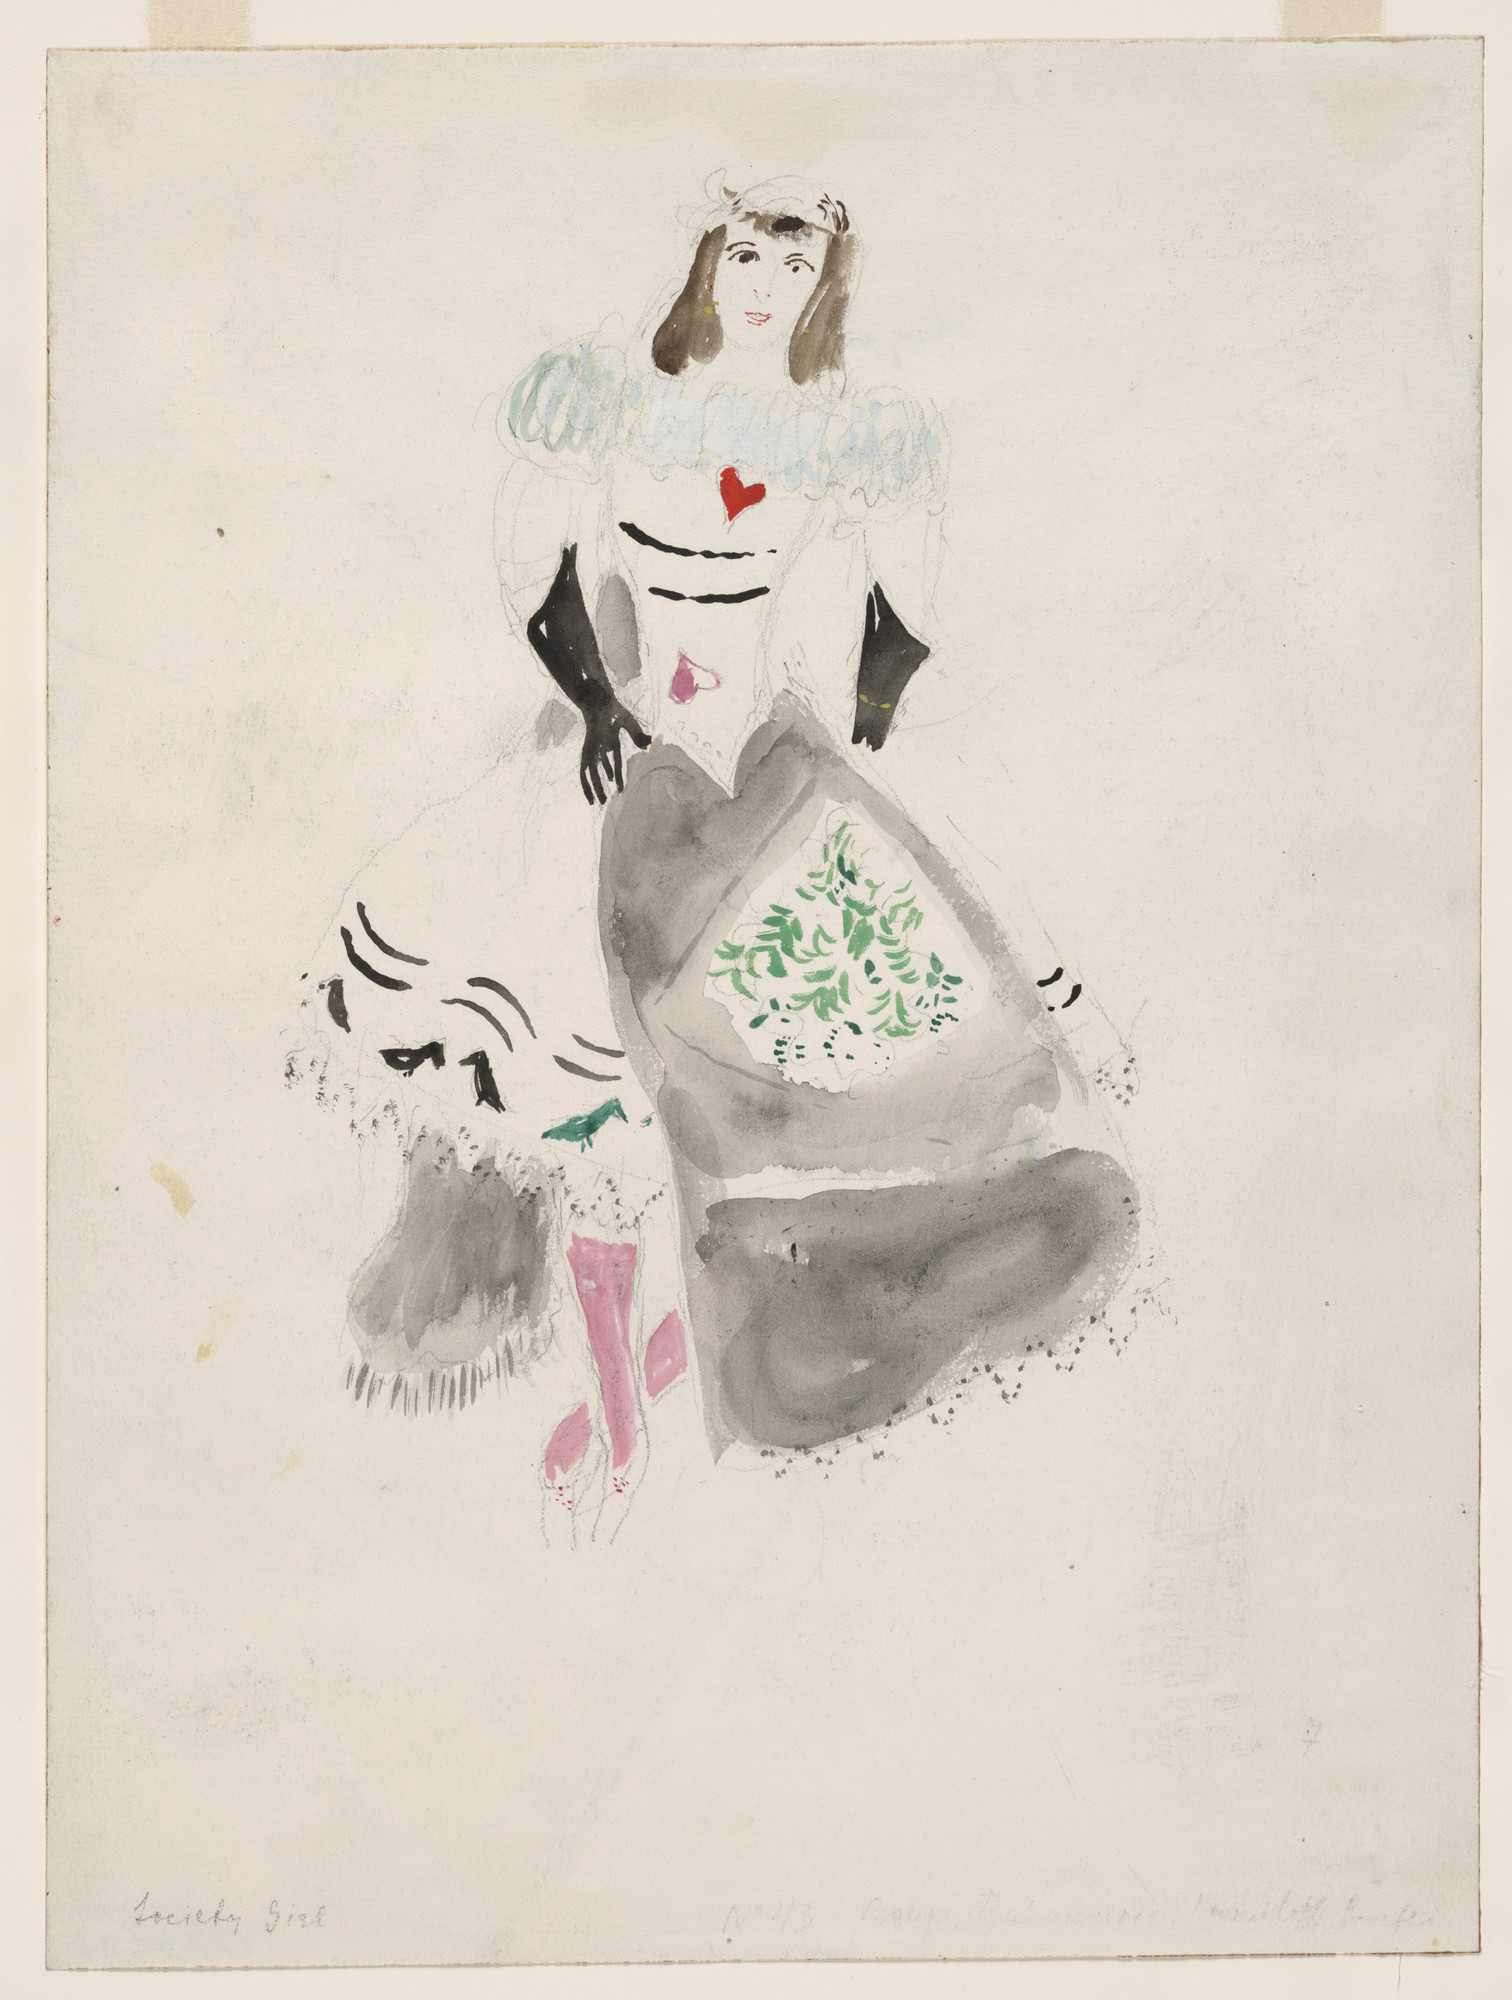 Marc Chagall. A Society Lady, costume design for Aleko (Scene IV). (1942)